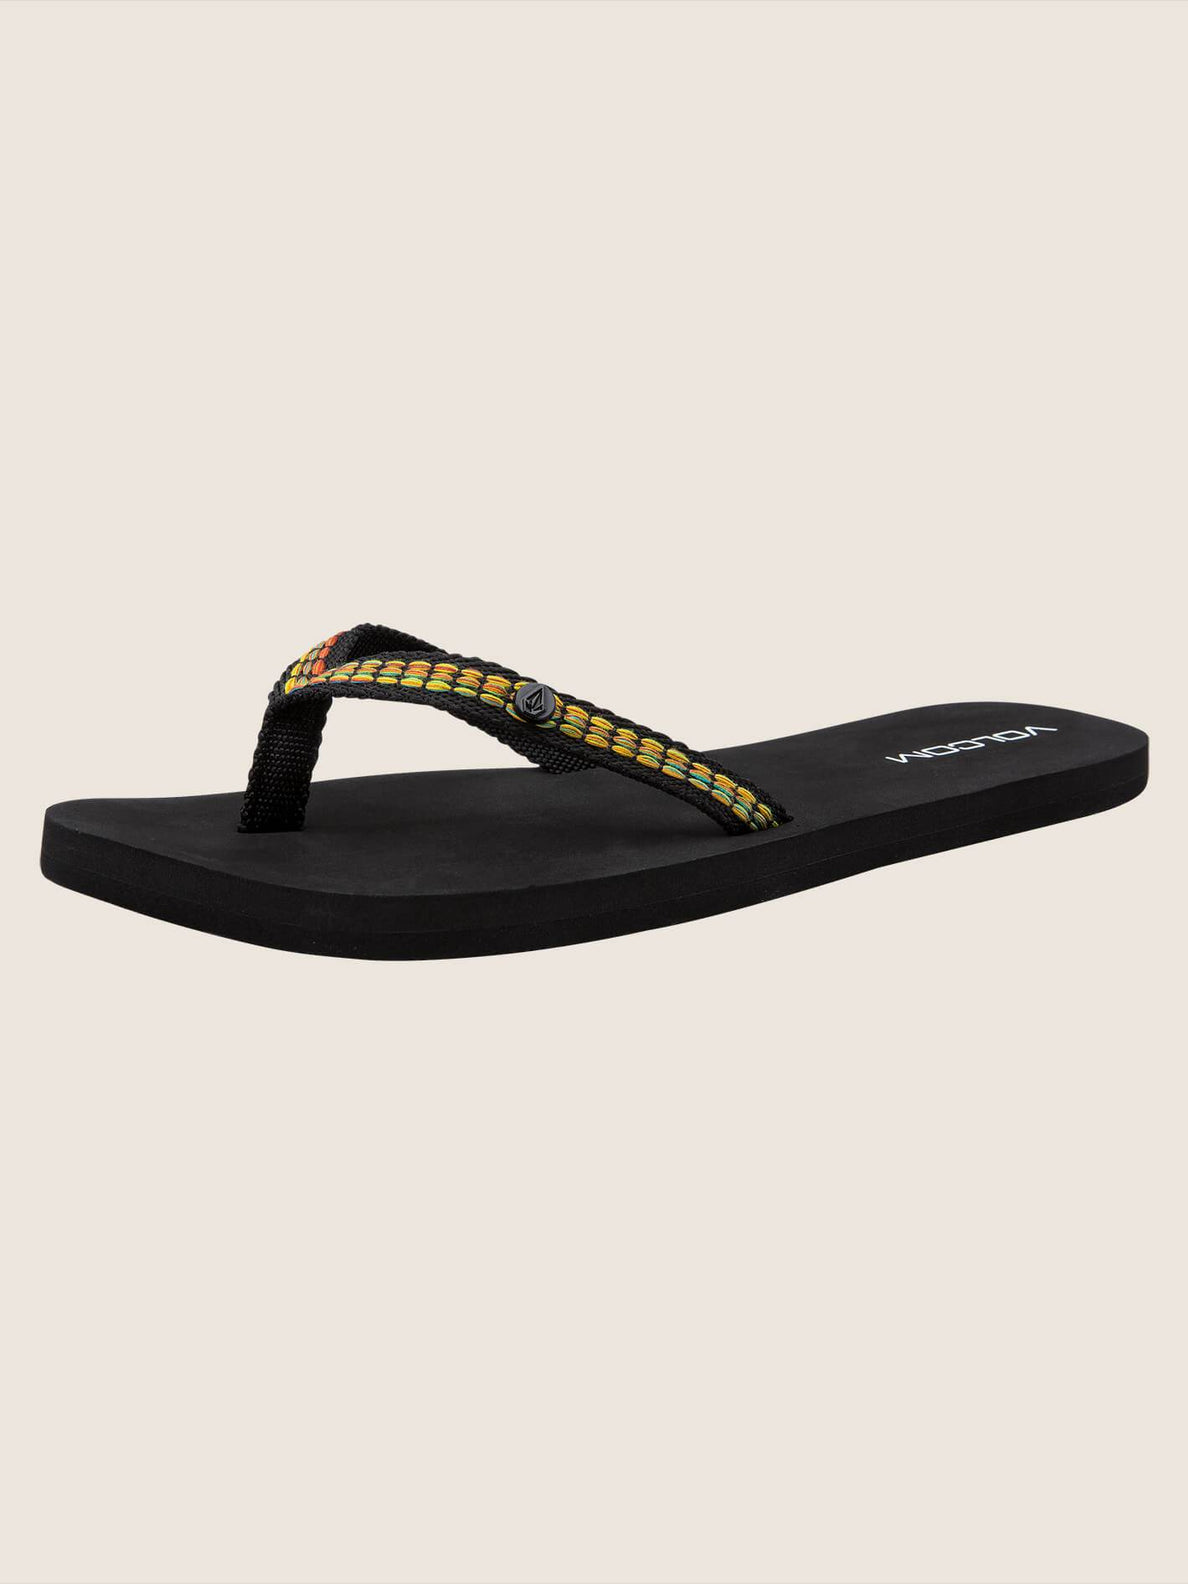 Trek Sandals In Black, Back View